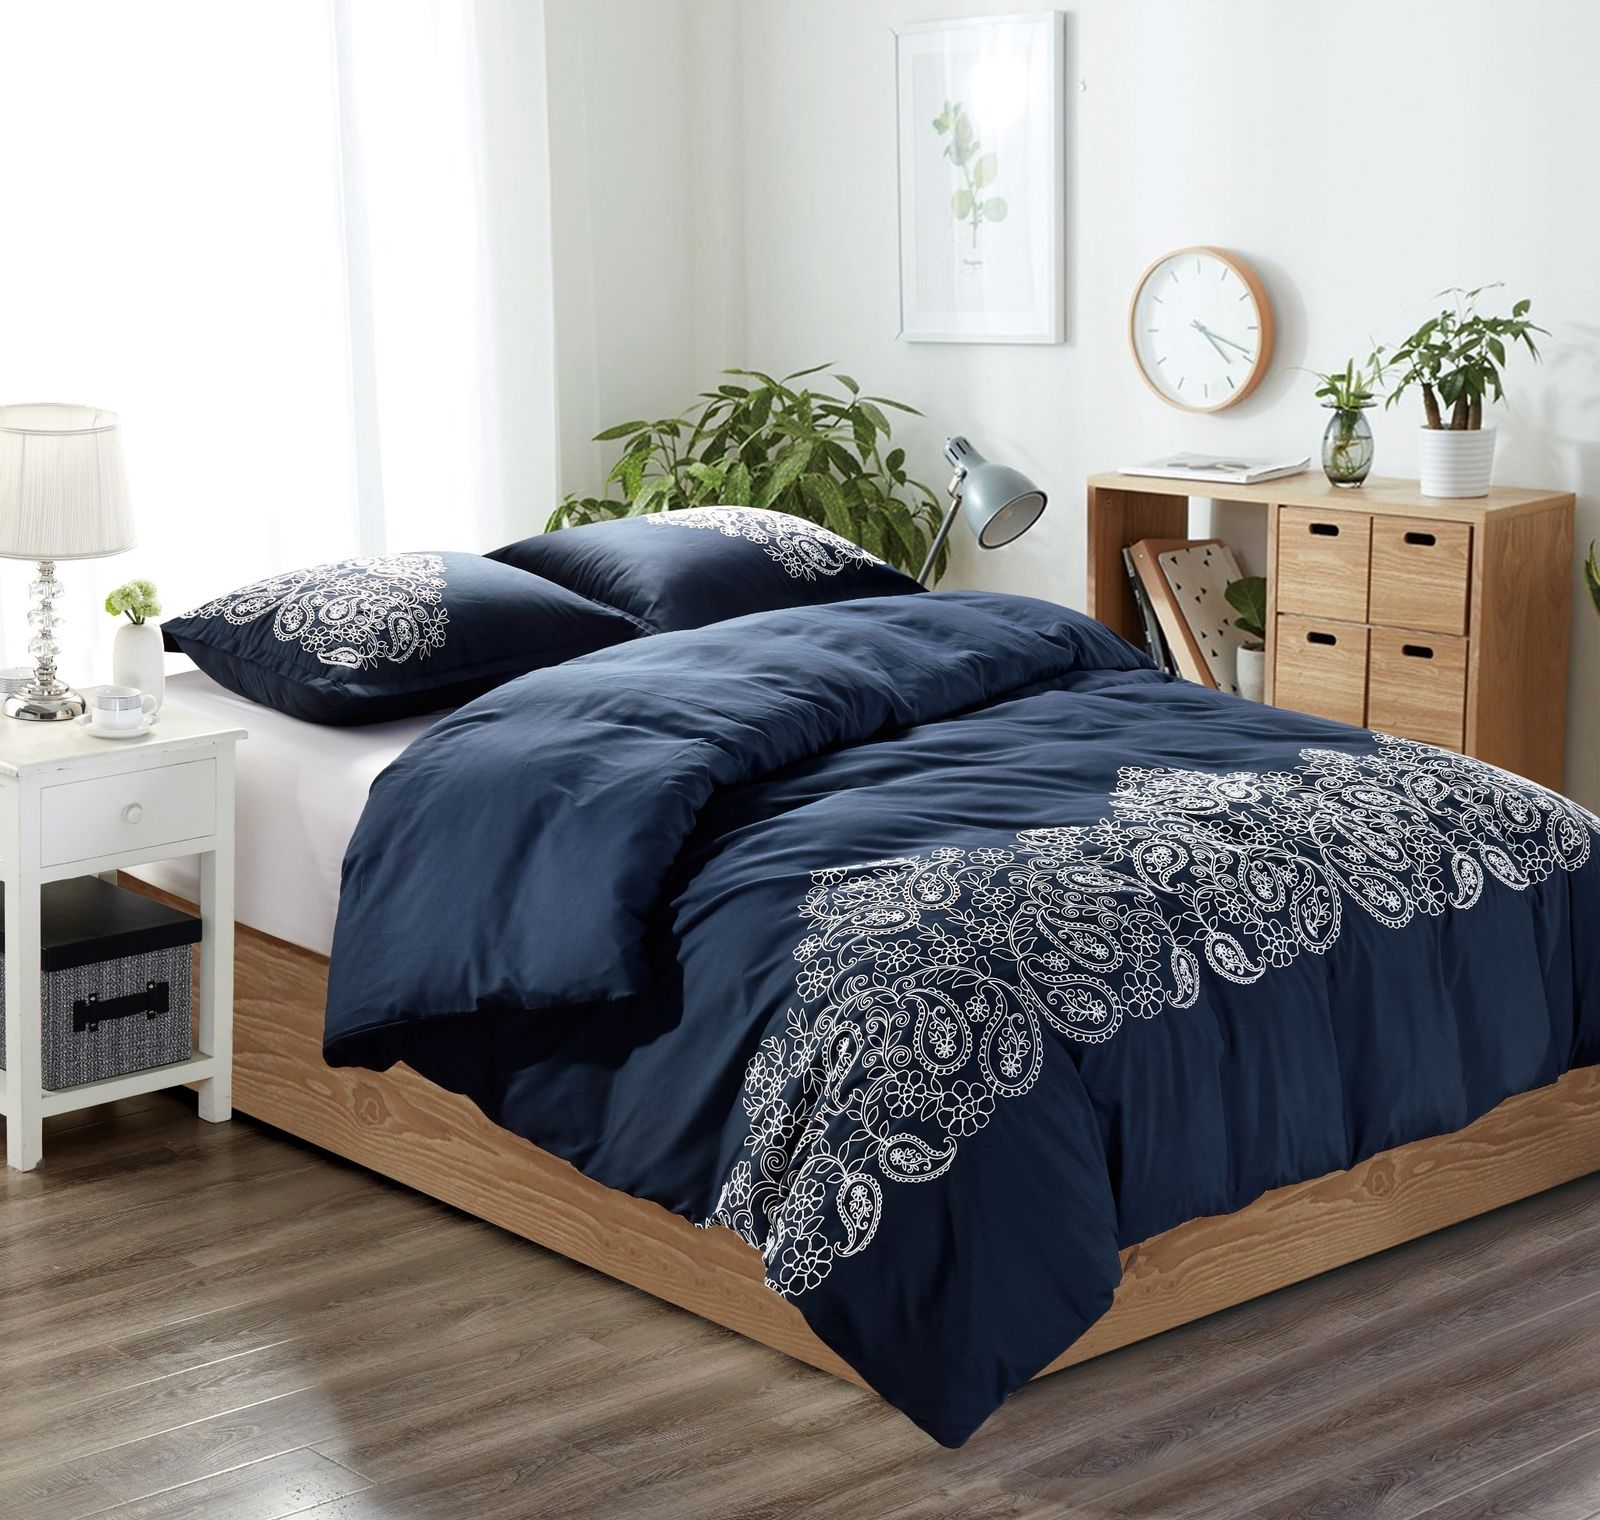 Chezmoi Collection Linz 3-Piece Paisley Floral Scroll Embroidered Duvet Cover Set